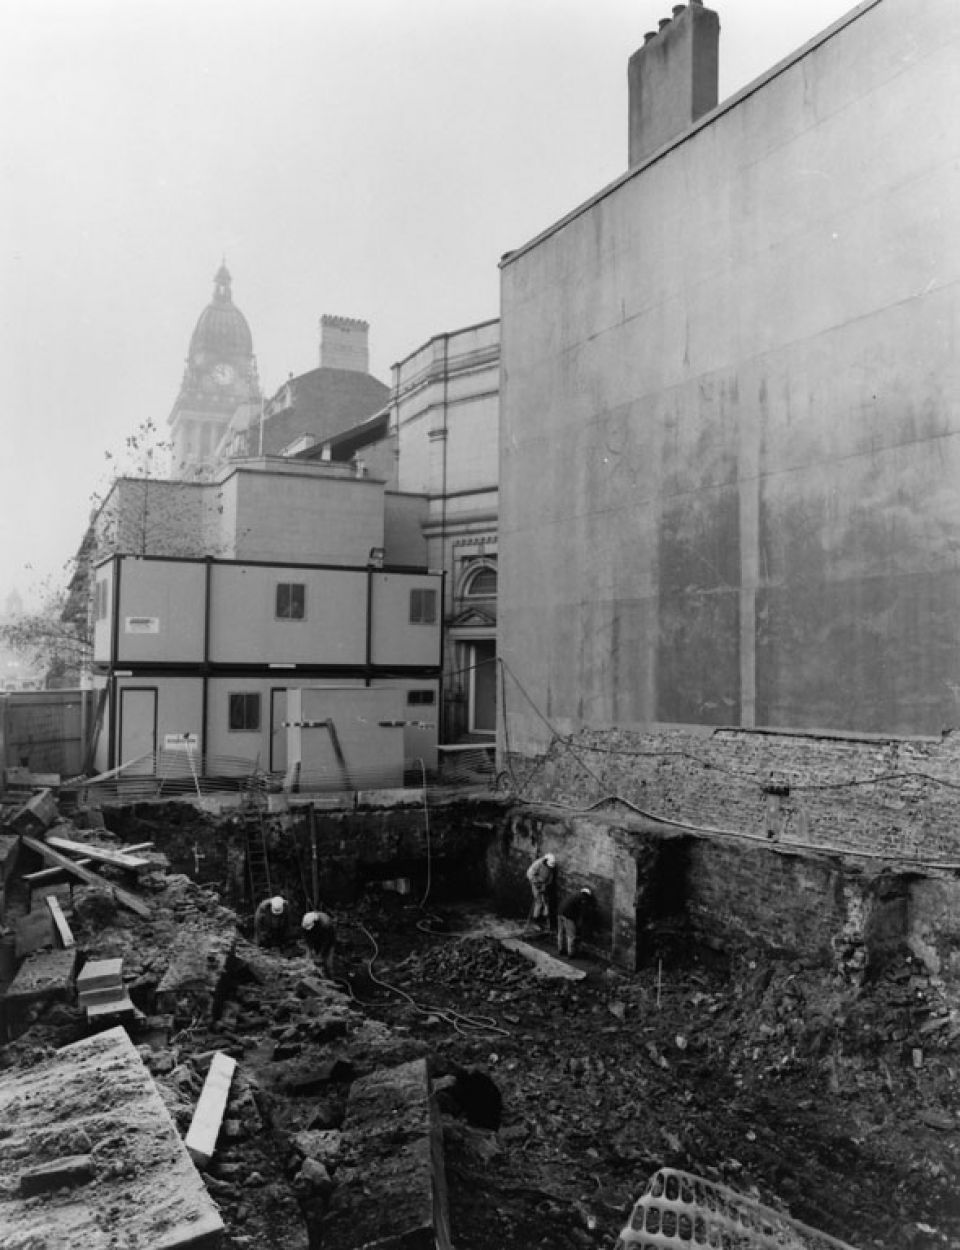 Construction of the front steps leading up to the Institute, c. 1993